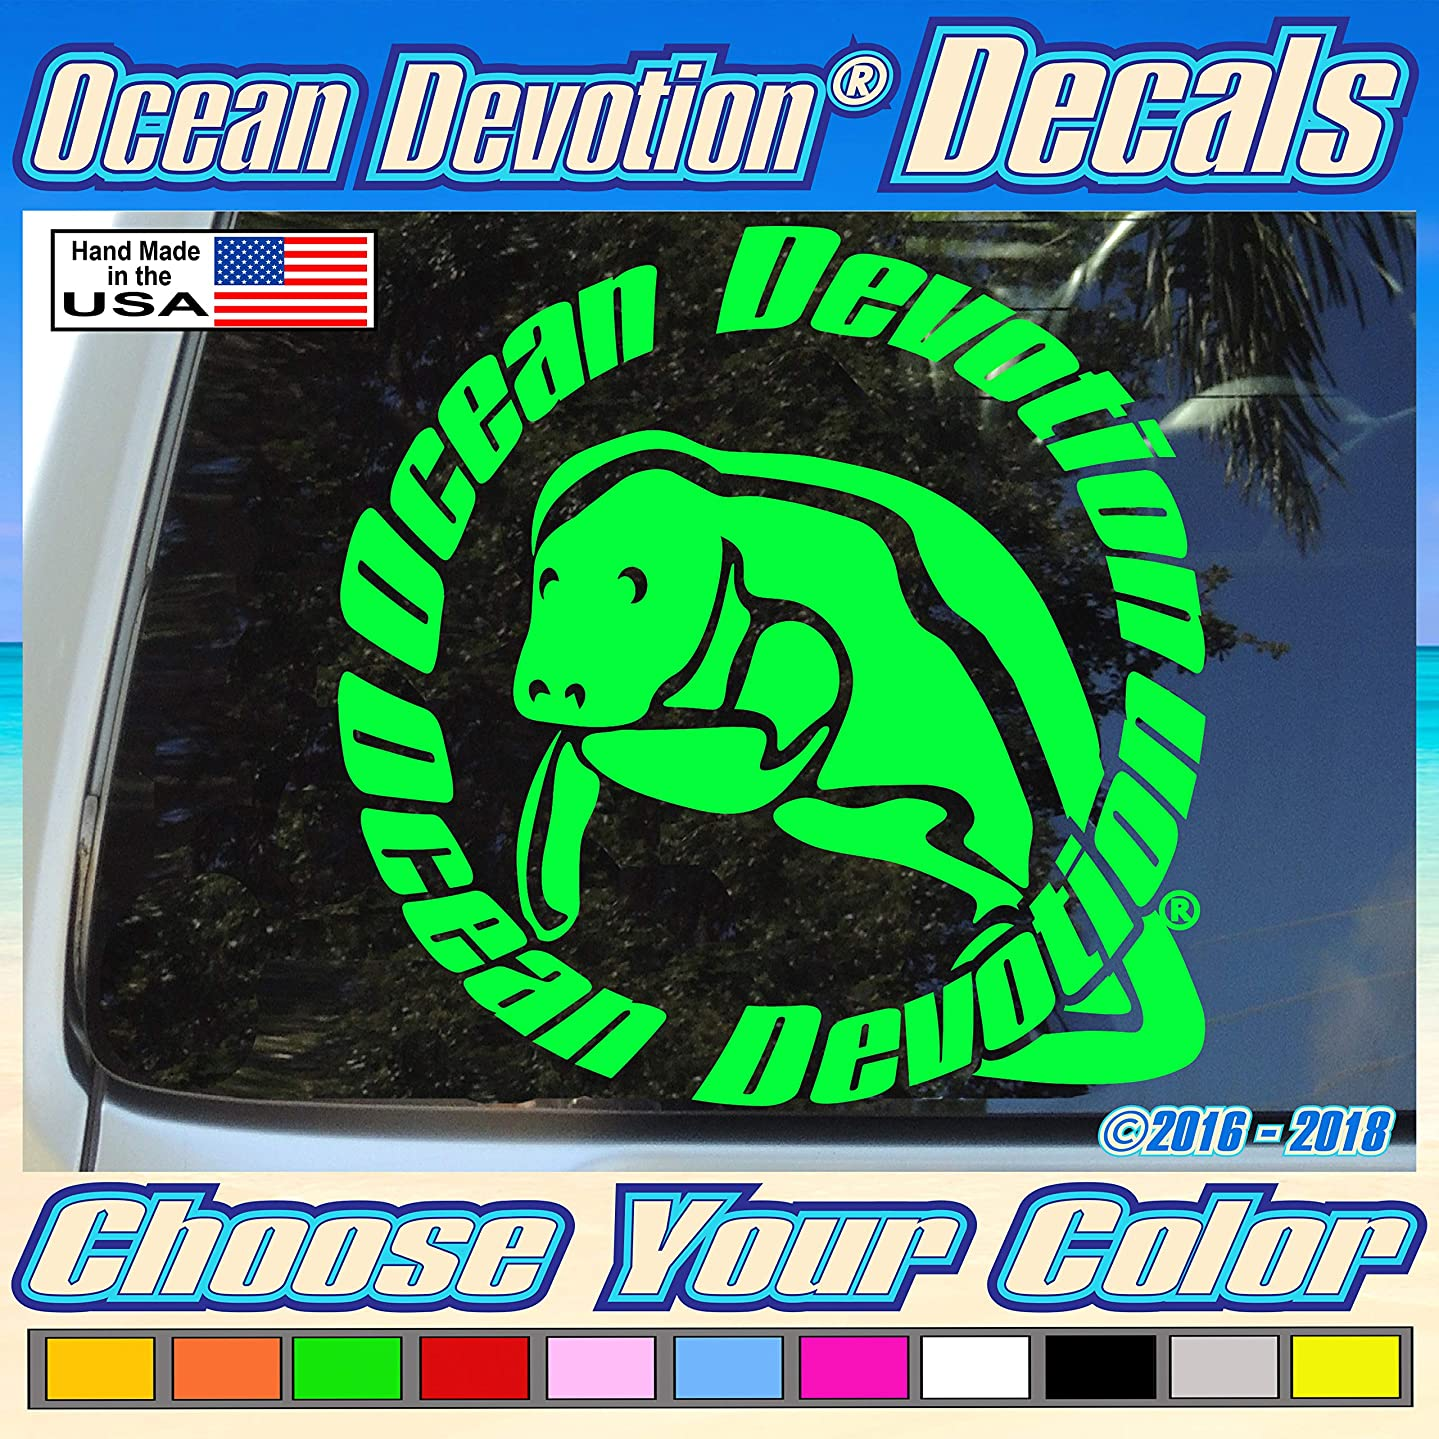 "Manatee V3 ""Ocean Devotion?"" Vinyl Decal/Sticker 8w x 5h inches - Keywords... Salt Life, Reel Life, Beach Life, Sea Life, Surf, Surfing, Fishing, Automobile, Car, Truck, Boat, Window, Hobie Cat"